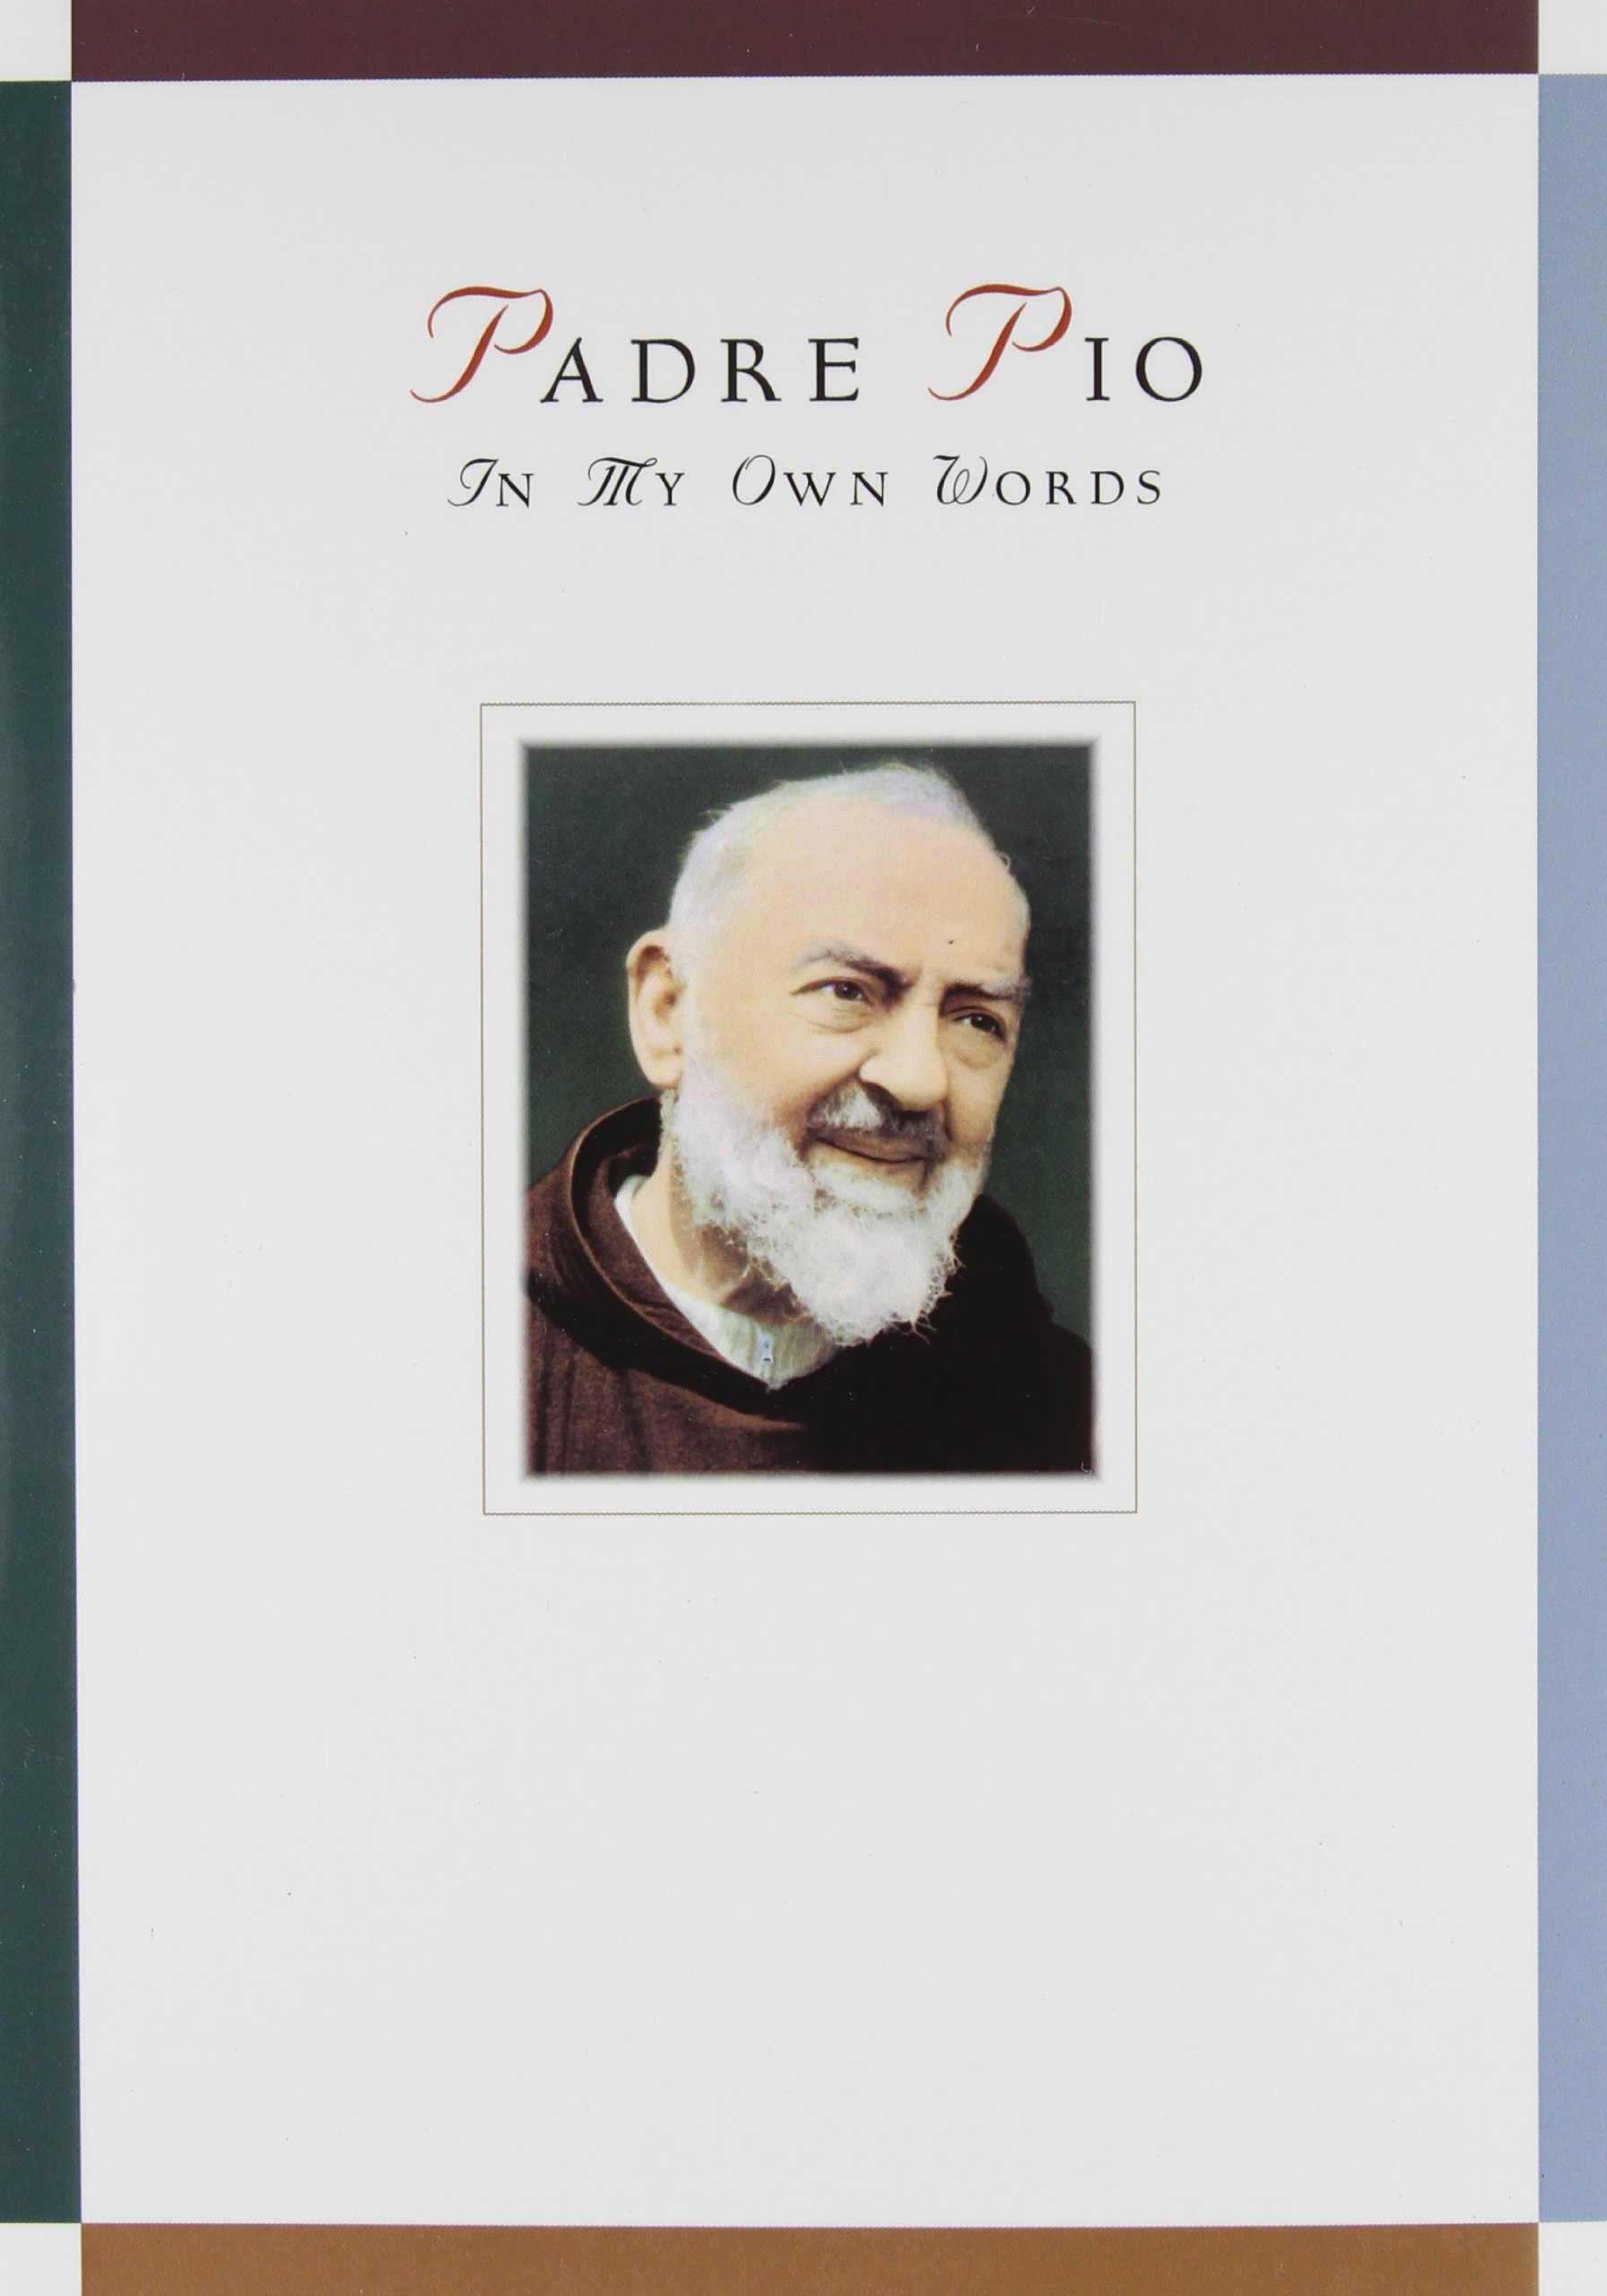 Padre Pio: In My Own Words